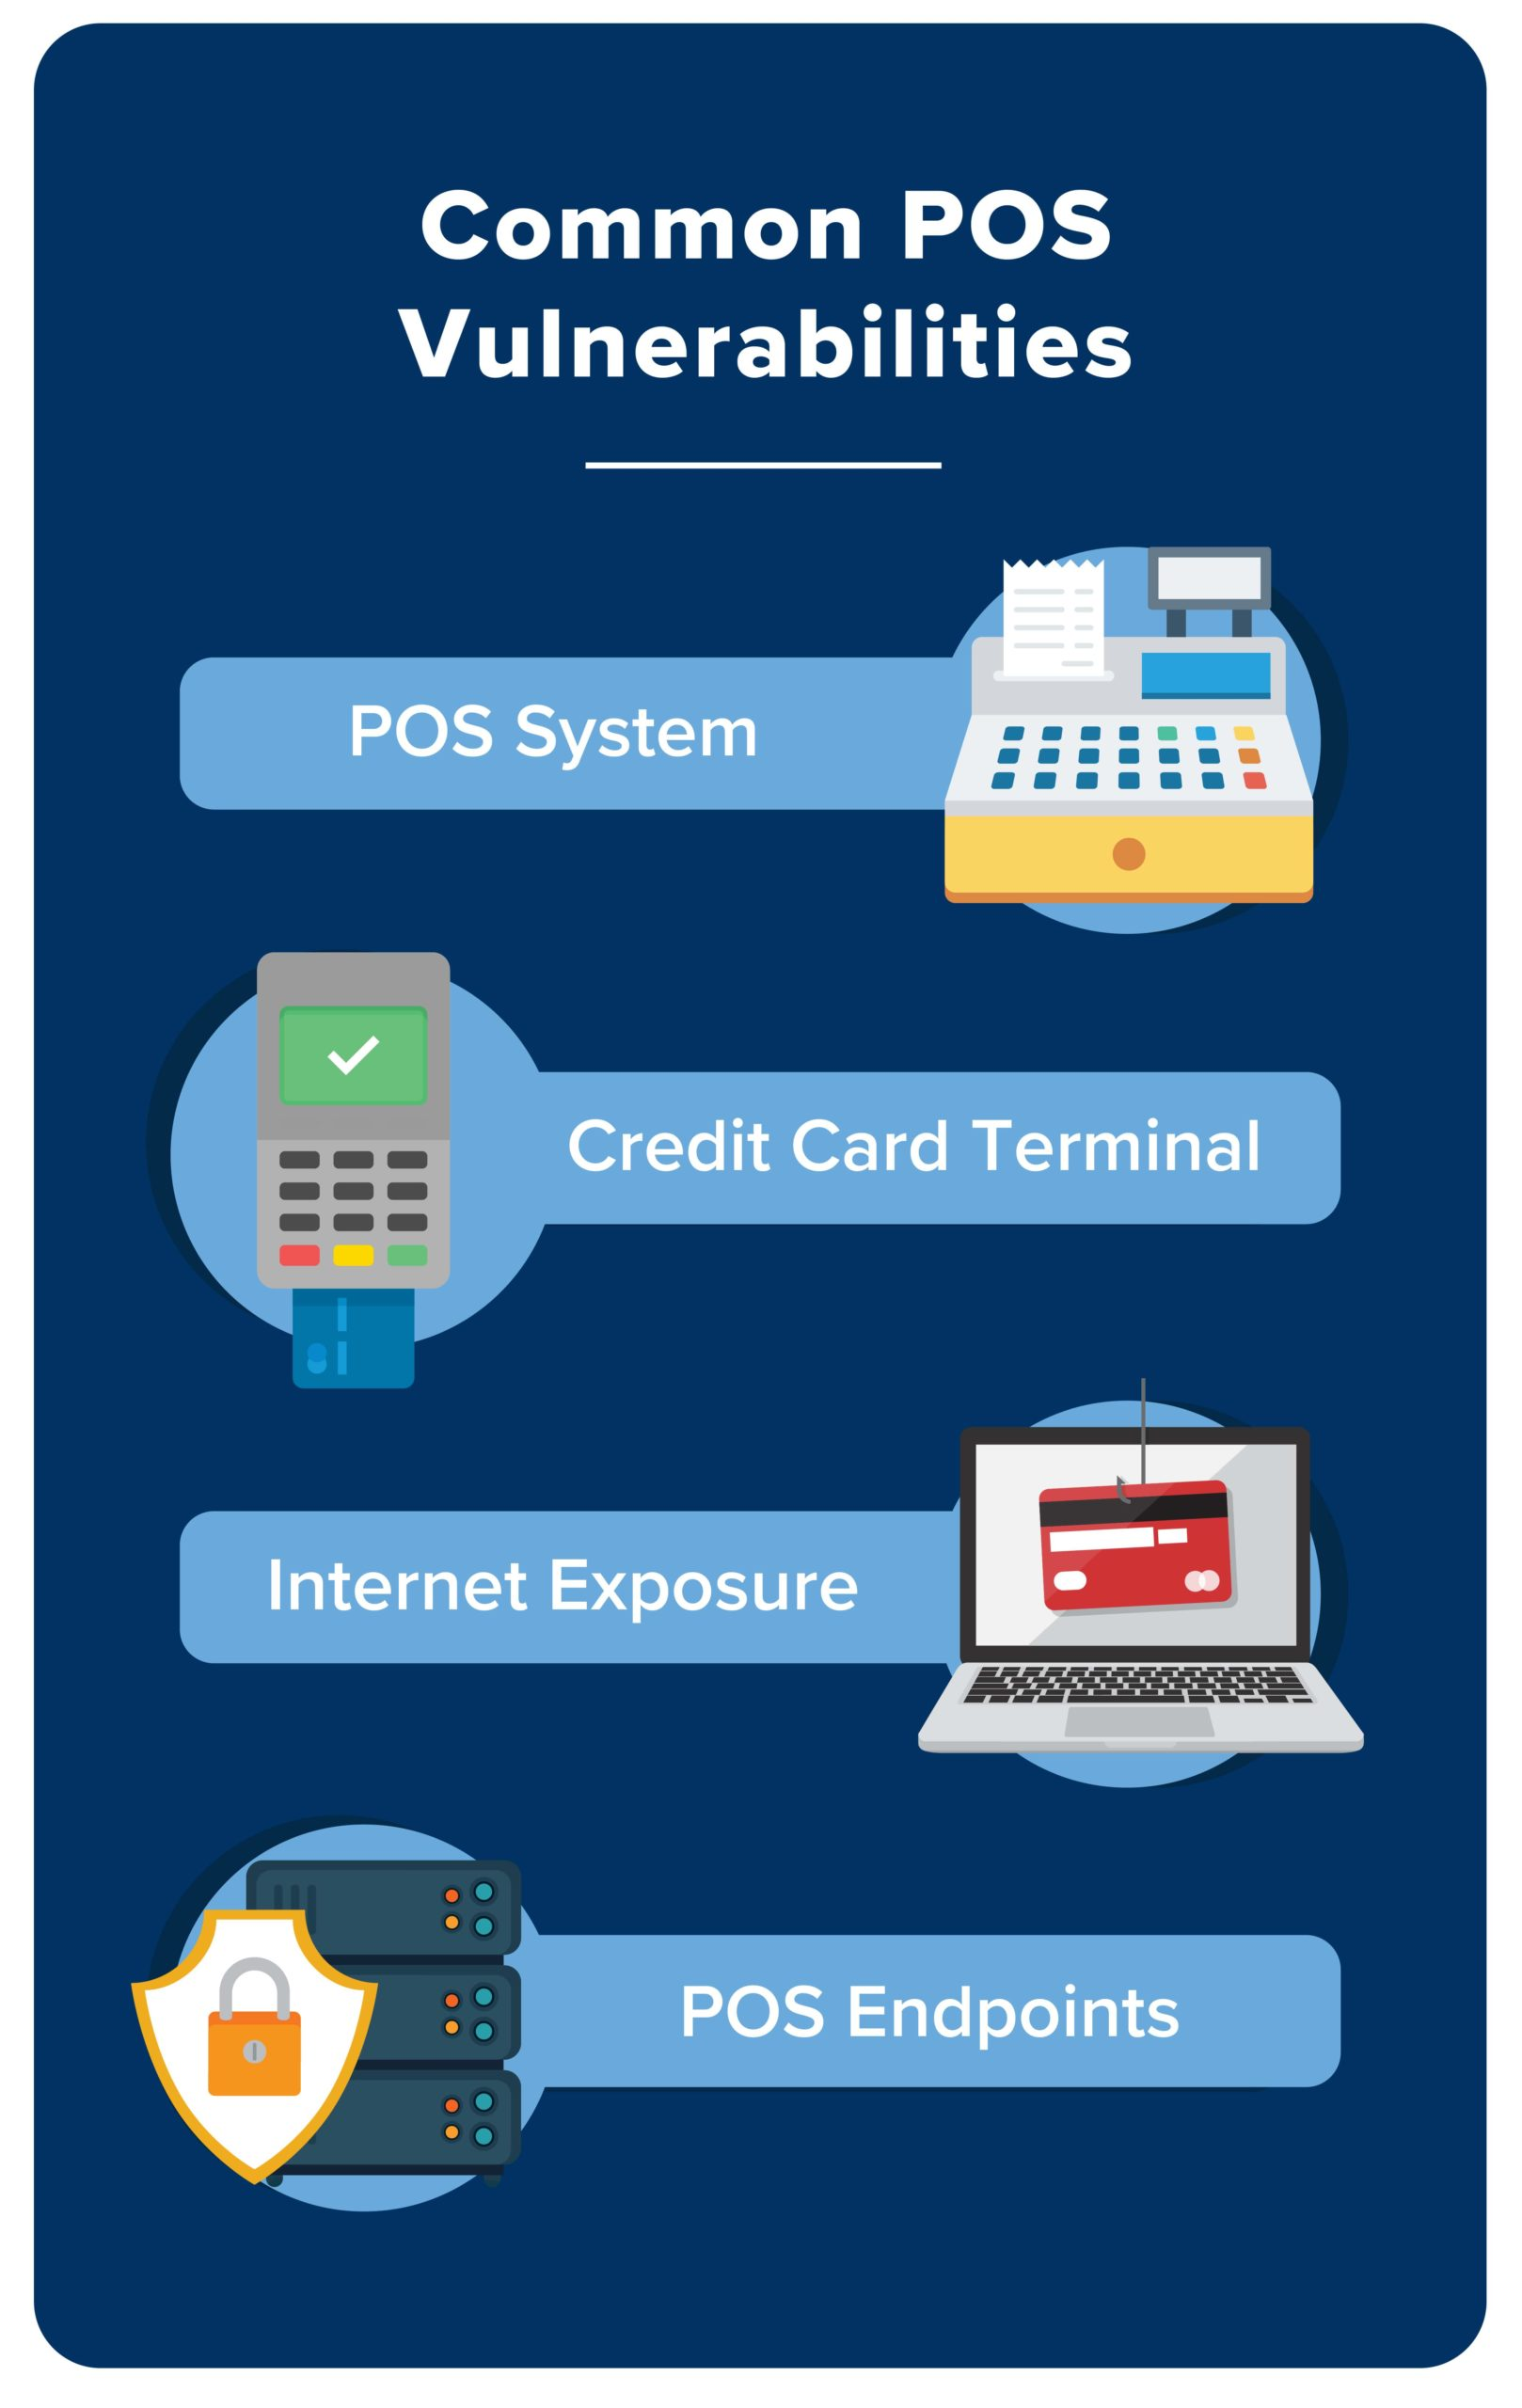 graphic depicting POS vulnerabilities including POS systems, Credit Card Terminals, Internet Exposure and POS Endpoints